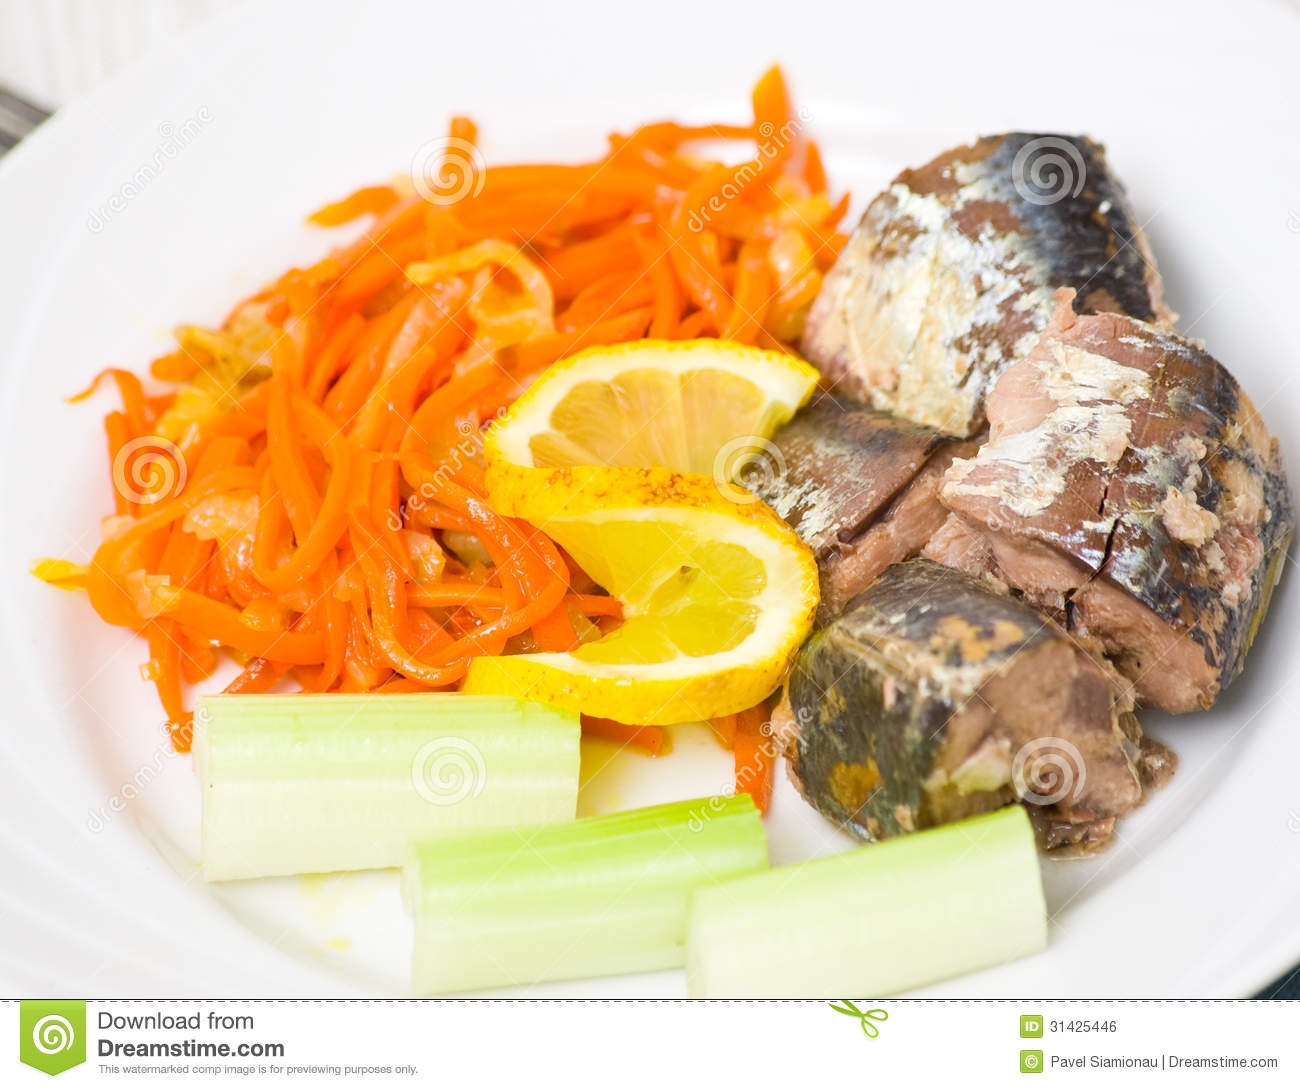 Pieces of fish with vegetables royalty free stock image for Piece of fish